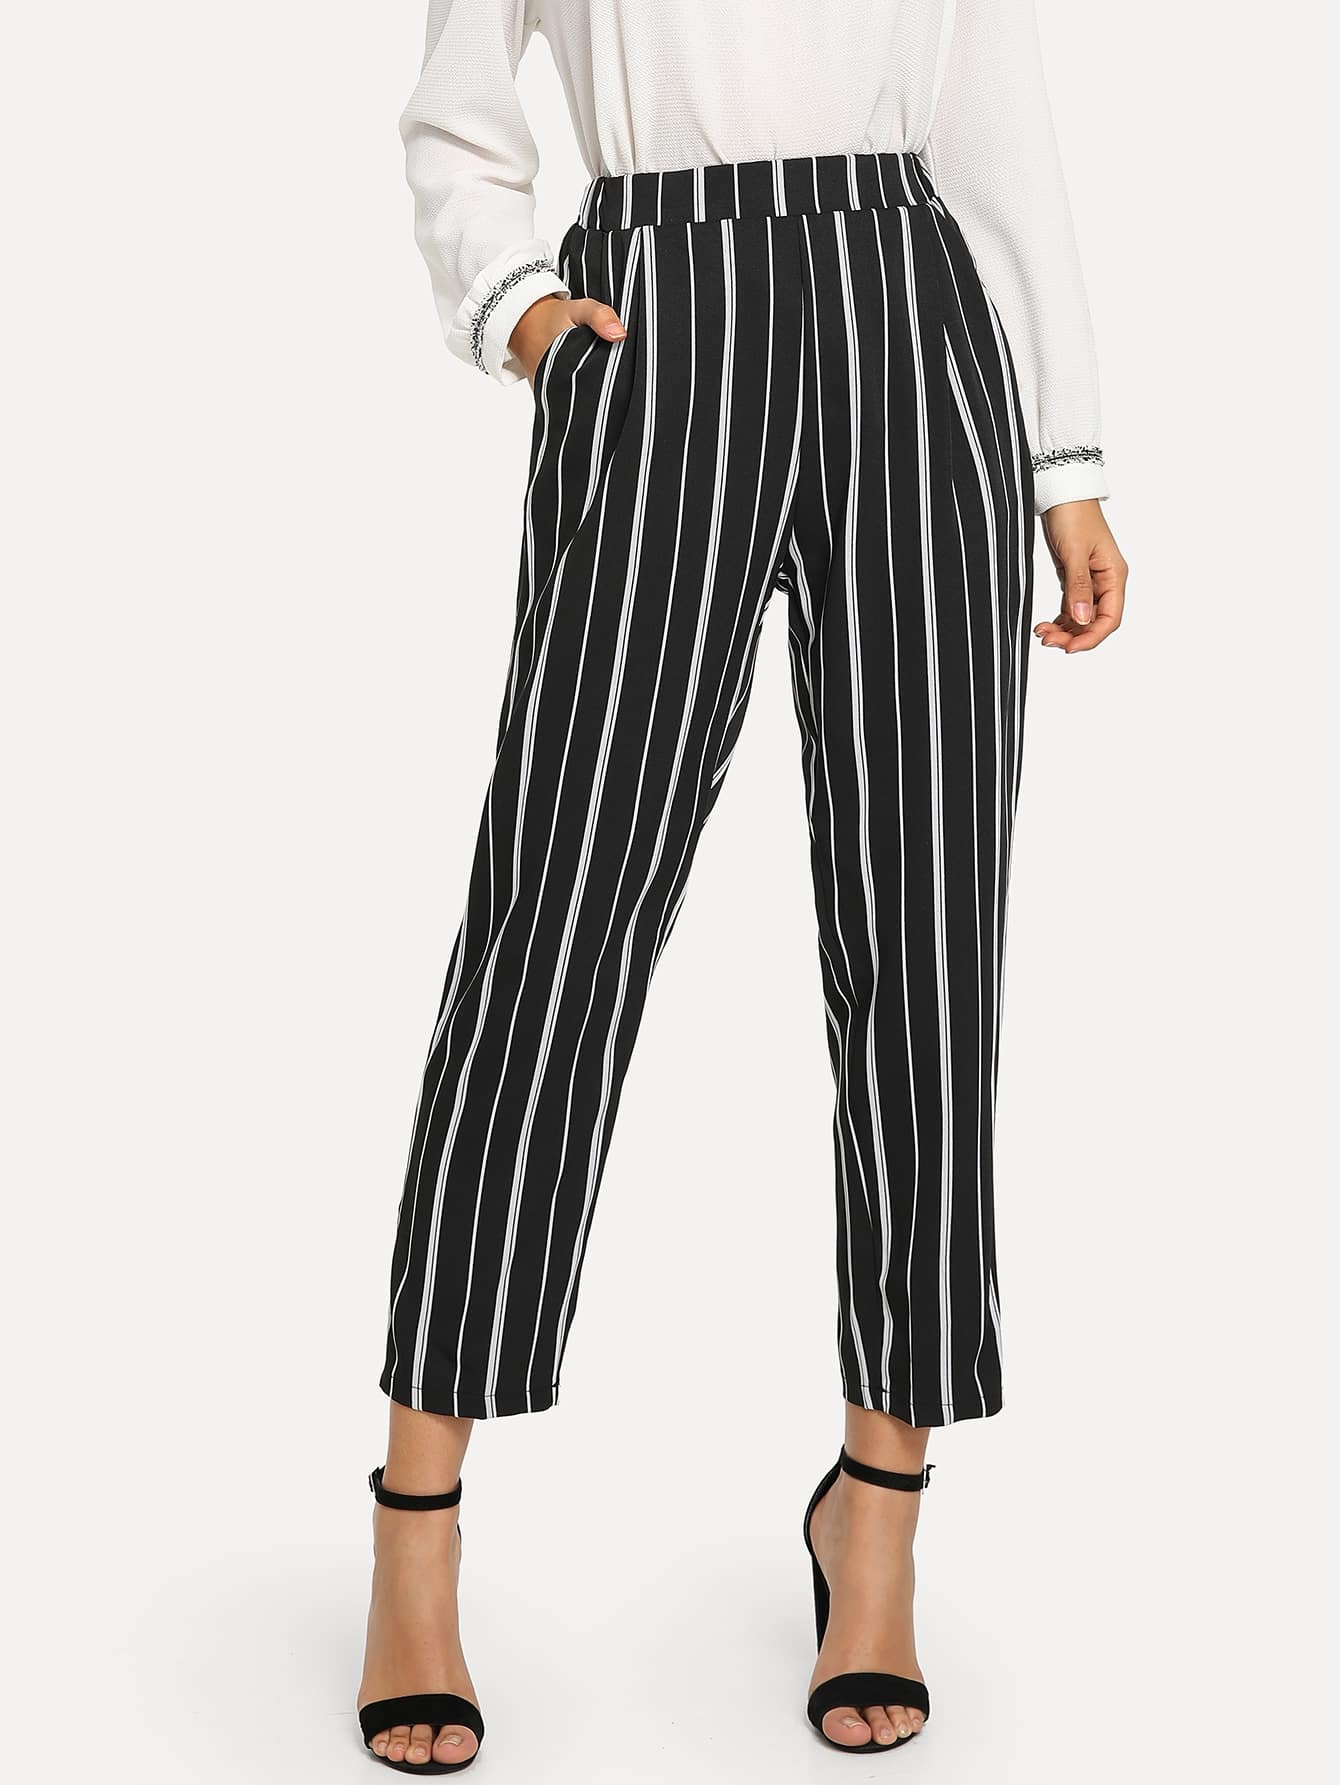 Striped Crop Pants Striped Crop Pants